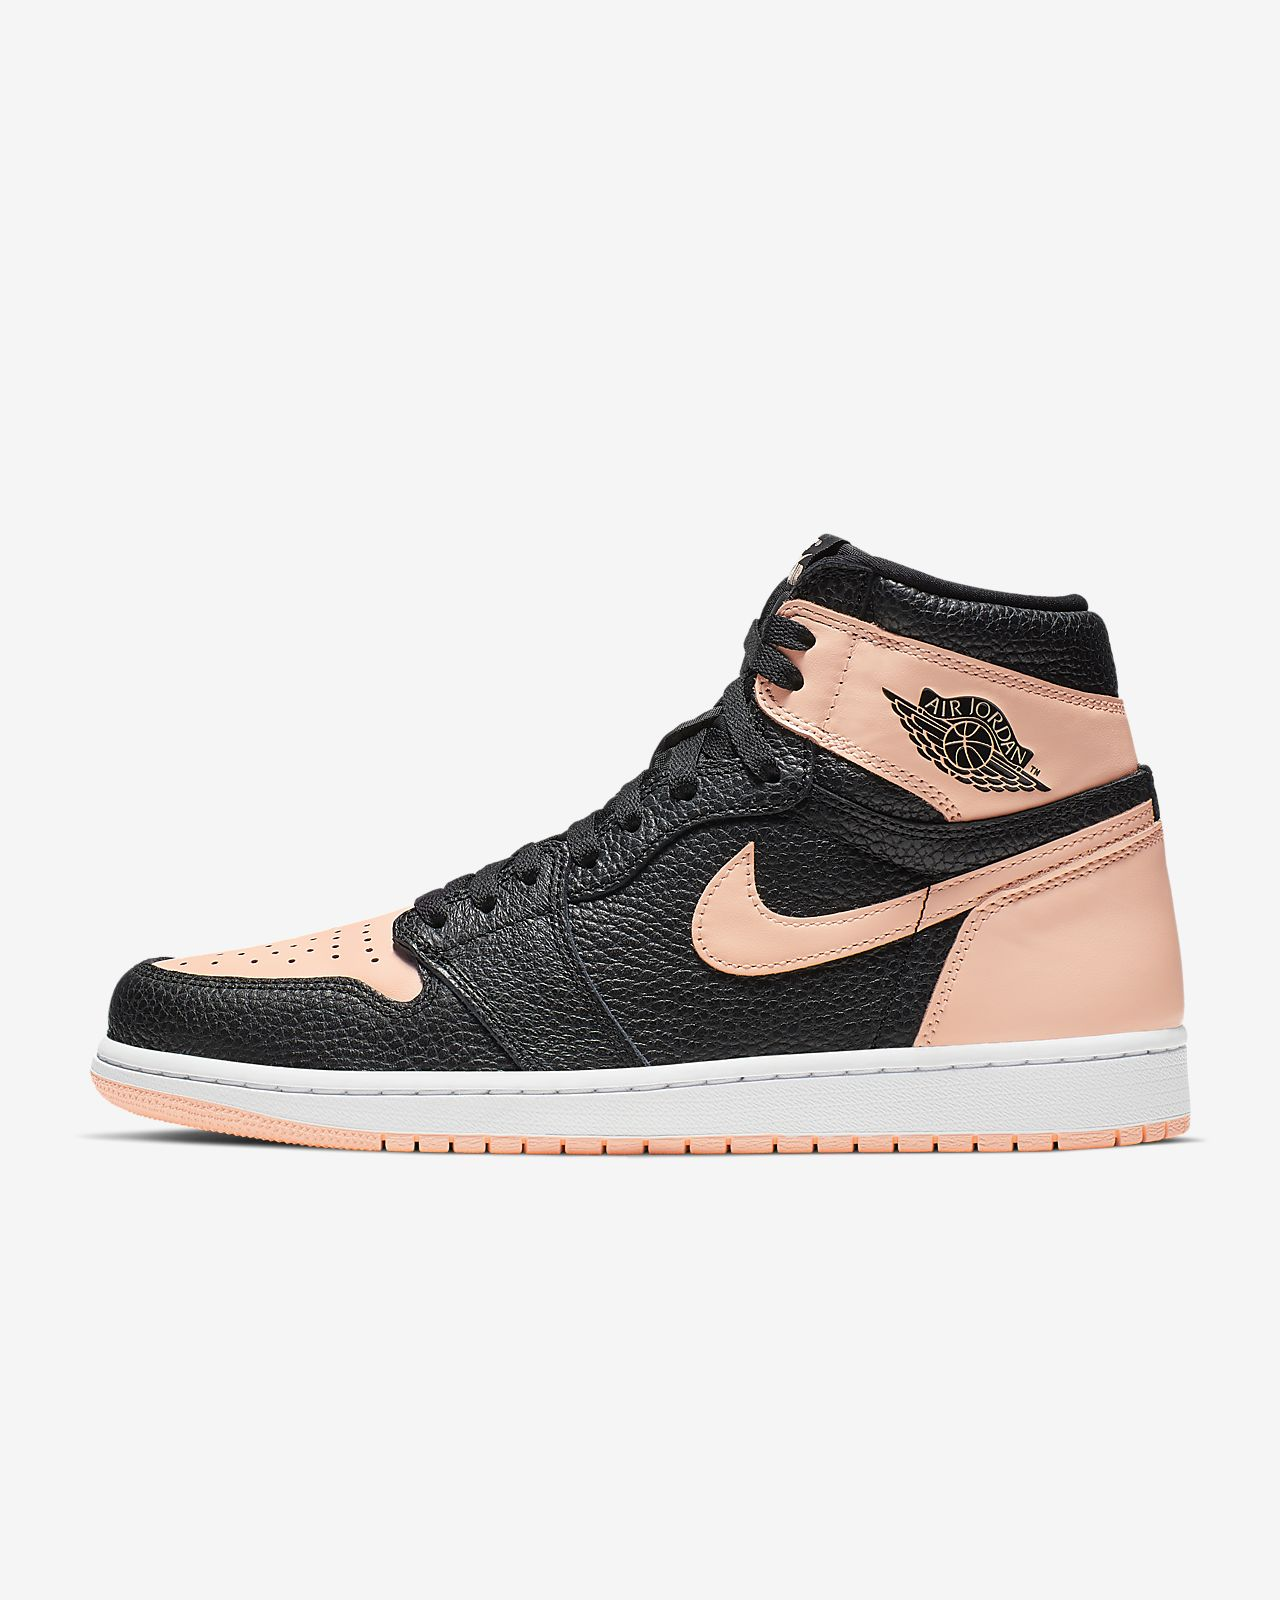 new concept df9df ab9a3 Air Jordan 1 Retro High OG